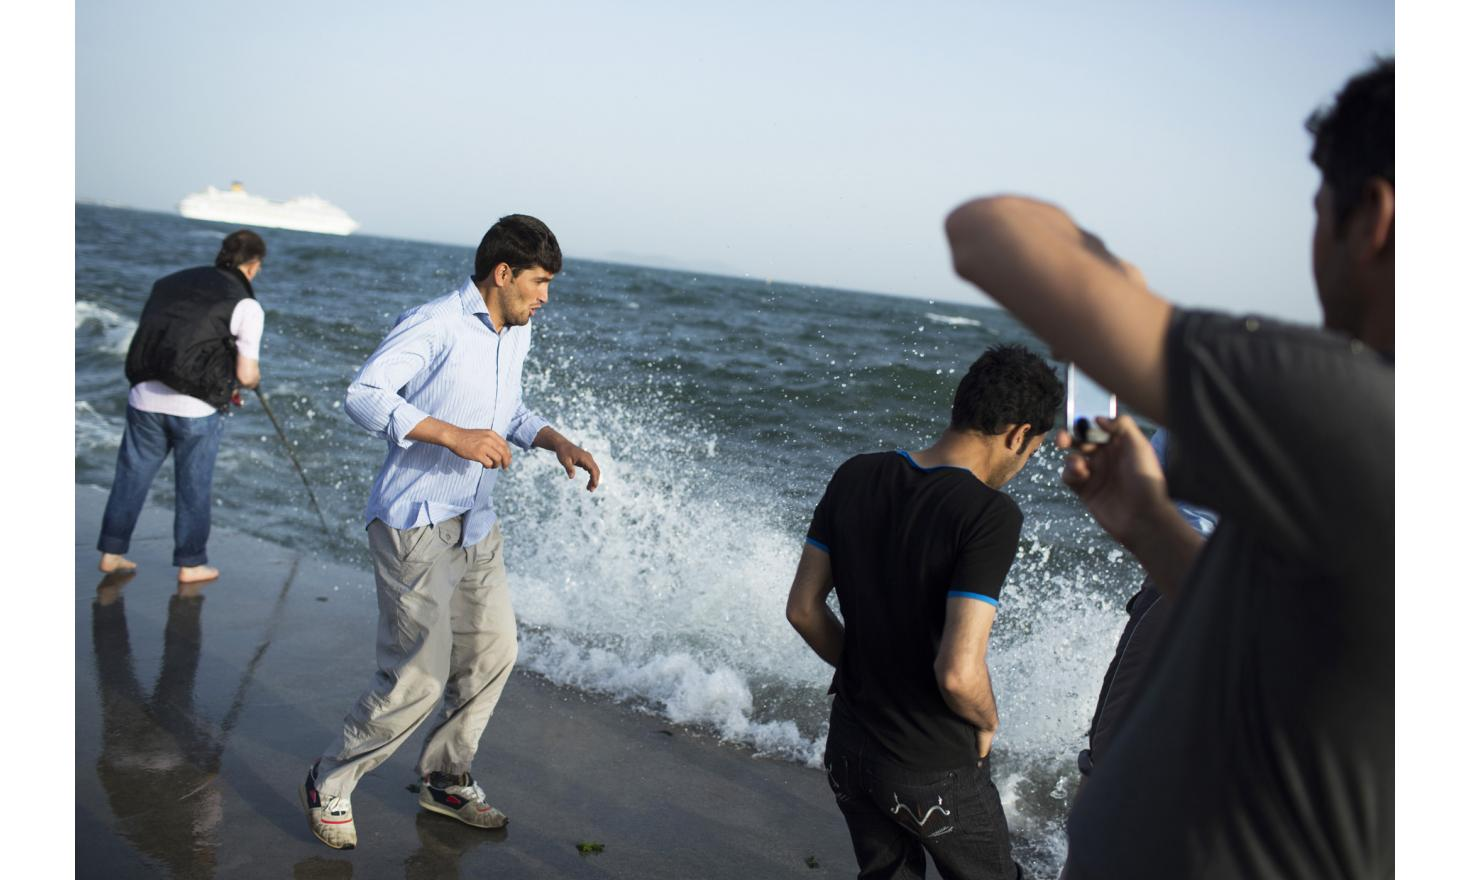 Istanbul, Turkey 23/05/2013 Rohani had never seen the sea before arriving in Istanbul. They can walk out every evening because police rarely arrest Afghan migrants.